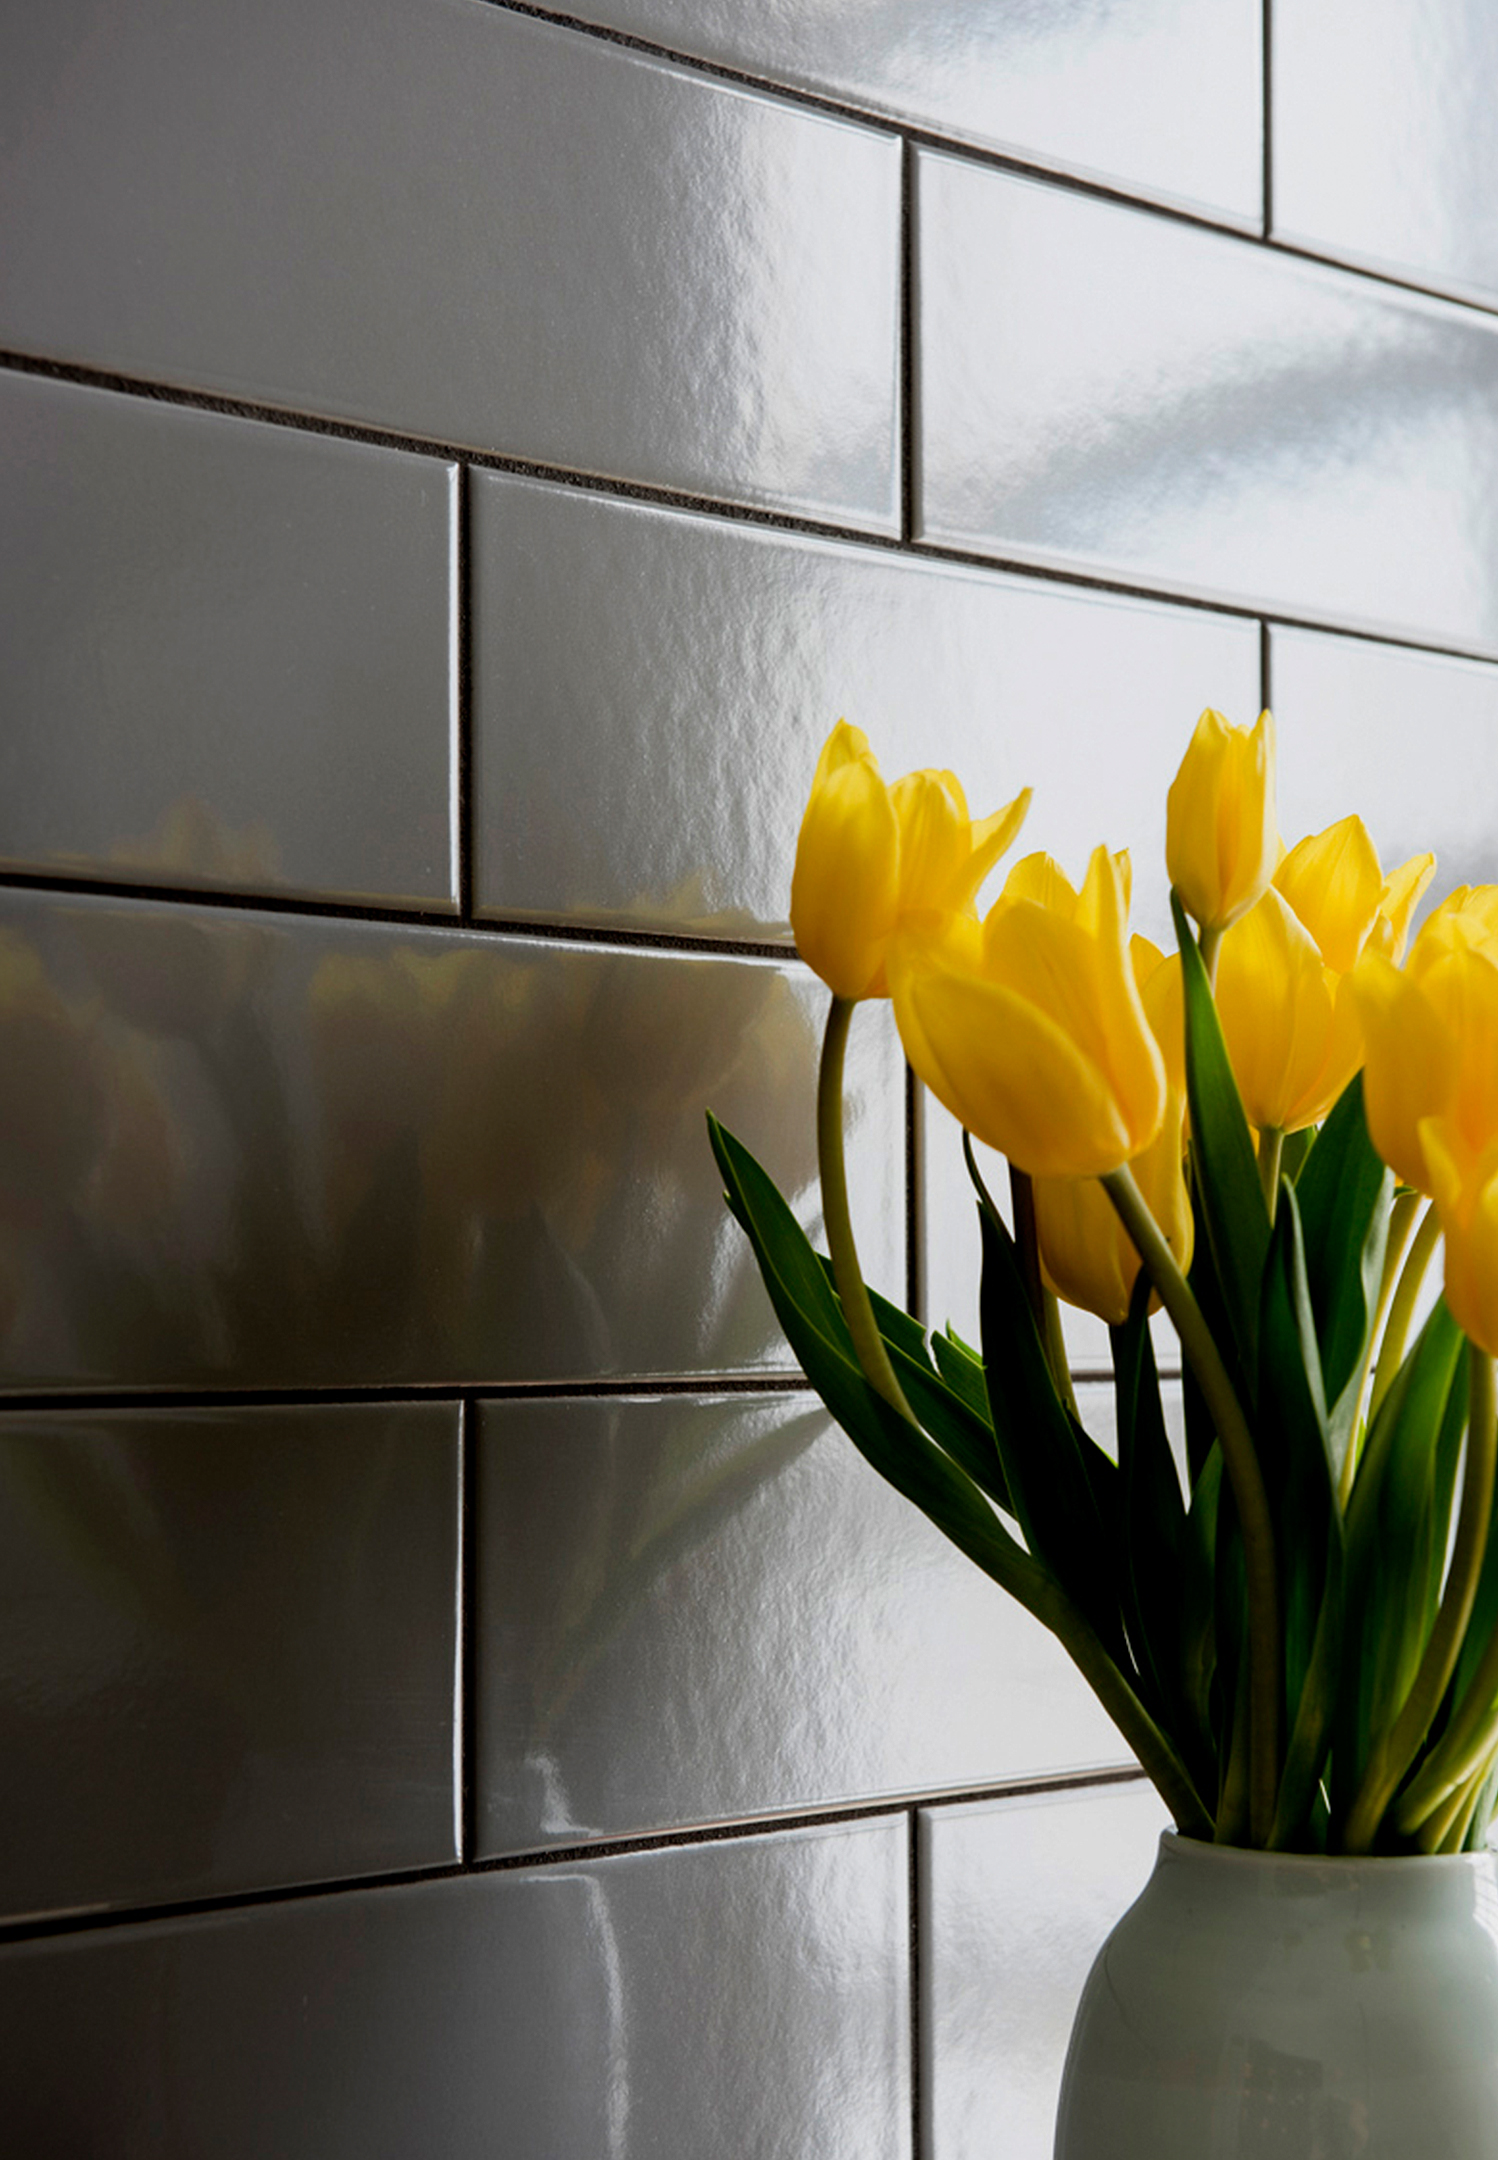 Made to withstand heavy use, the European-crafted tile is suitable for both walls and flooring.